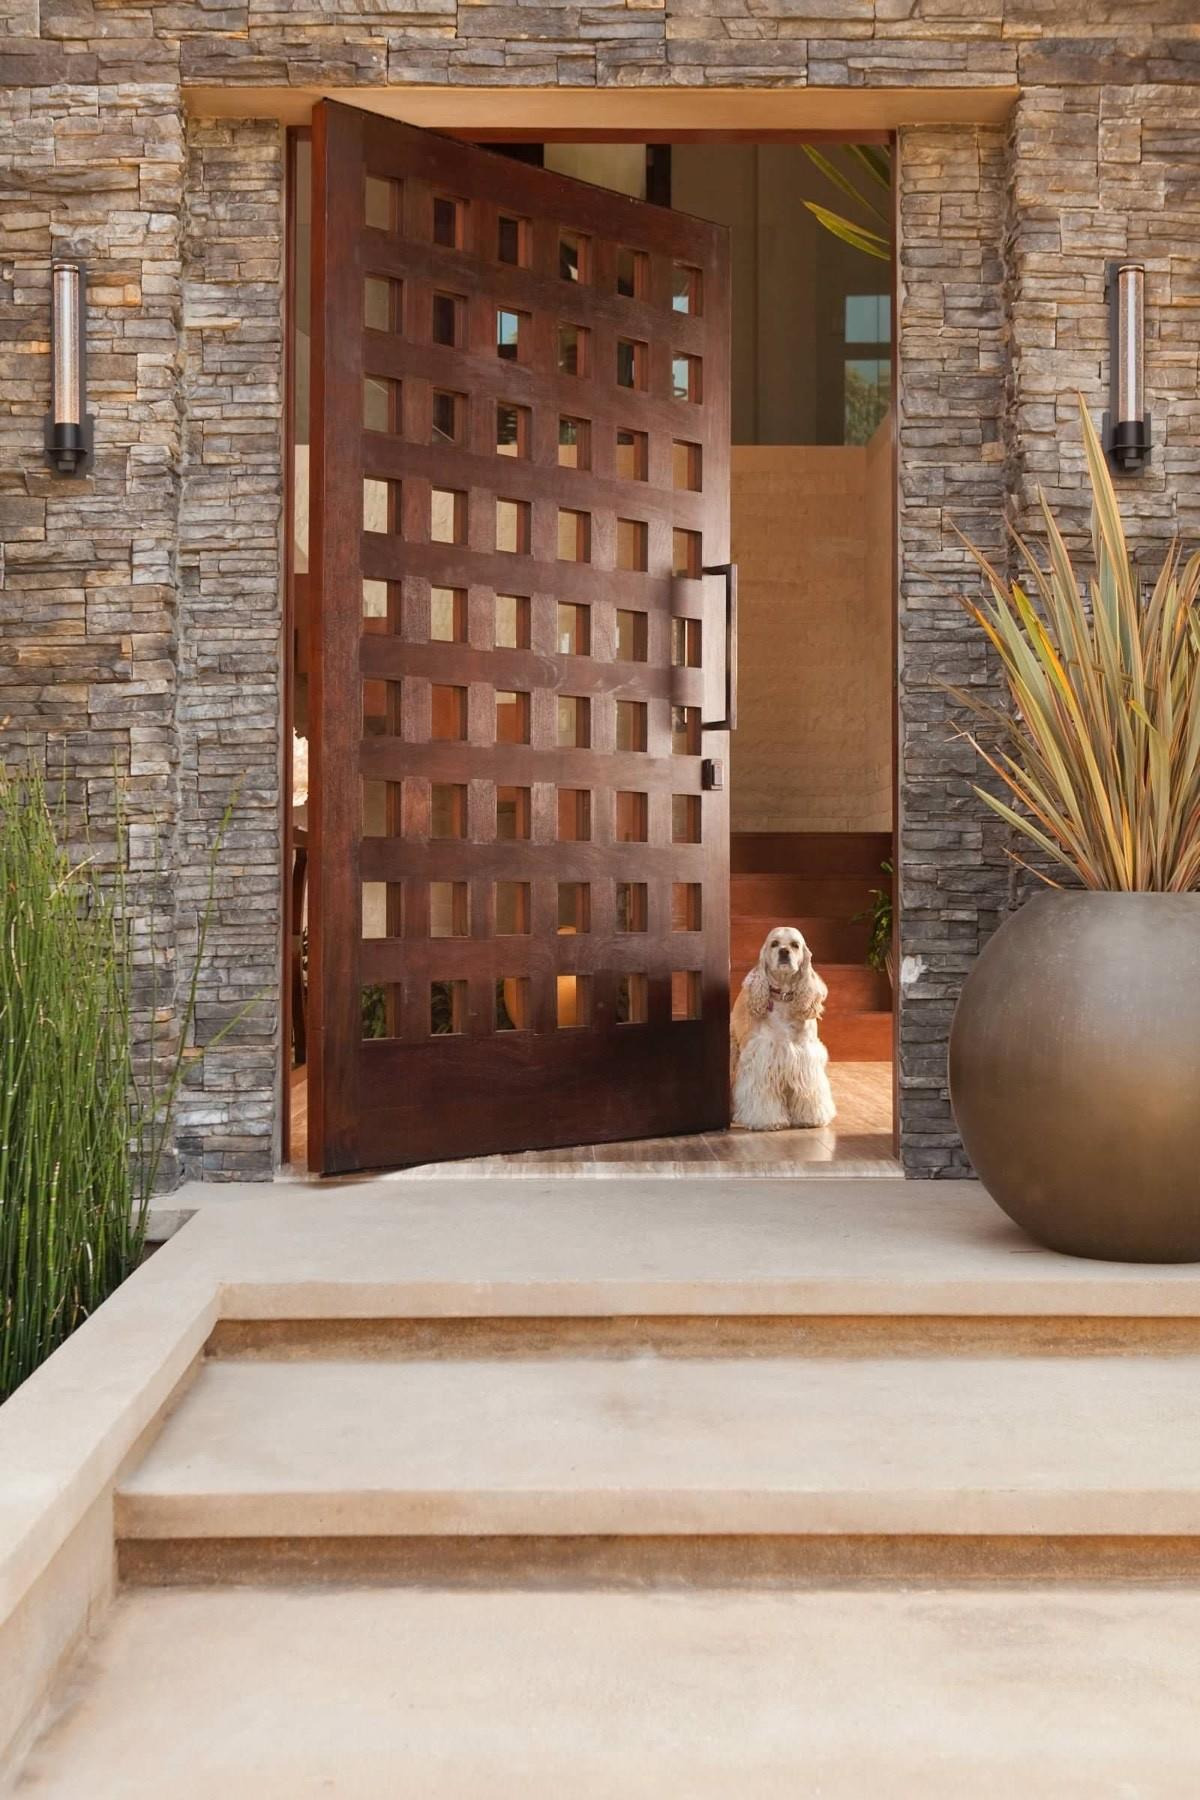 House Front Entrance Design Best Of 37 Resourceful Front Door Designs by top Designers